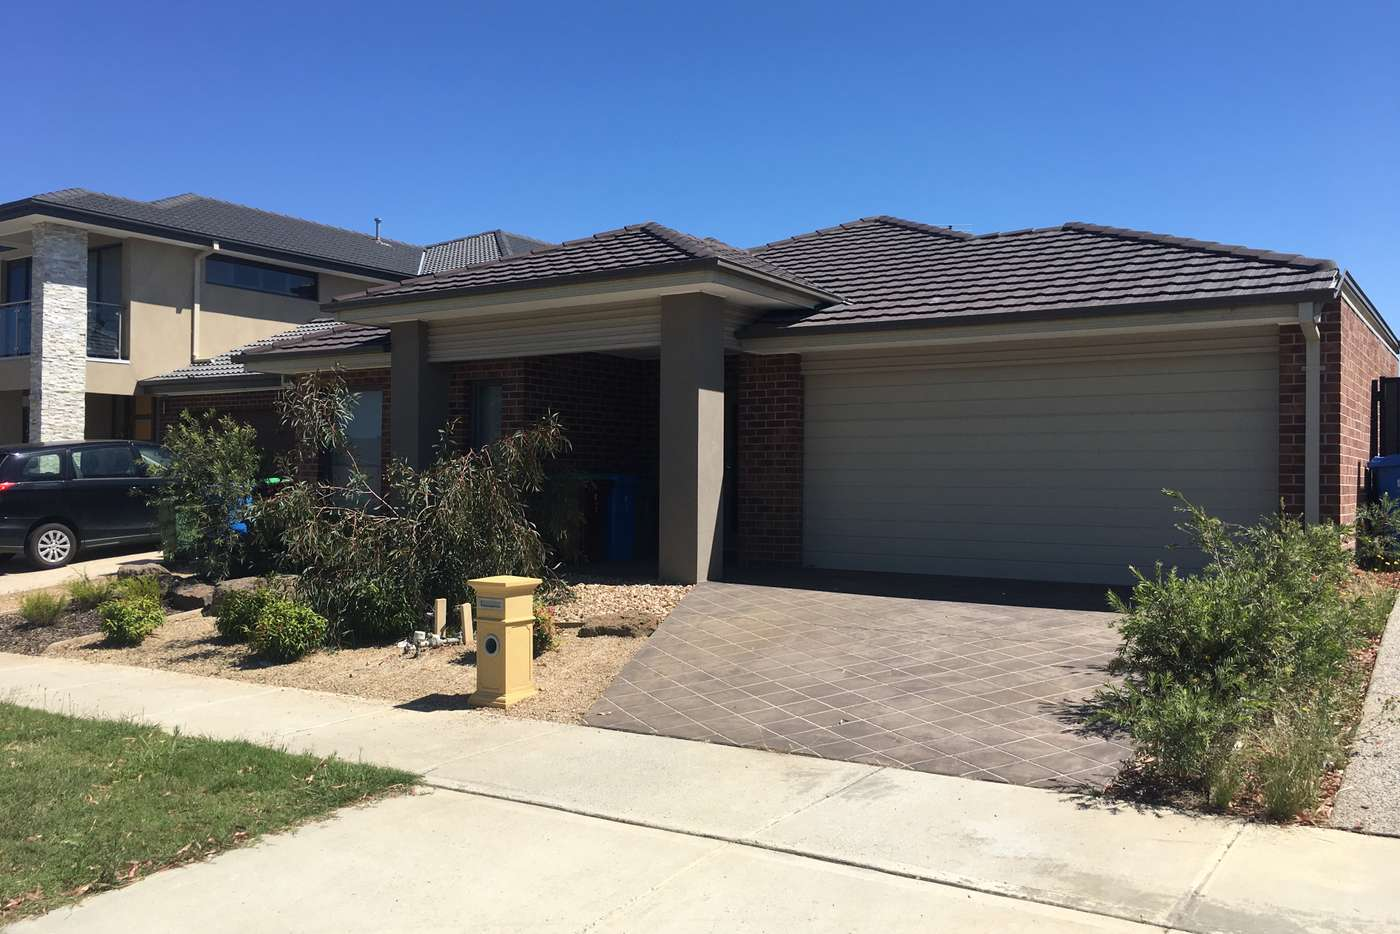 Main view of Homely house listing, 7 Gillyweed Avenue, Clyde North VIC 3978